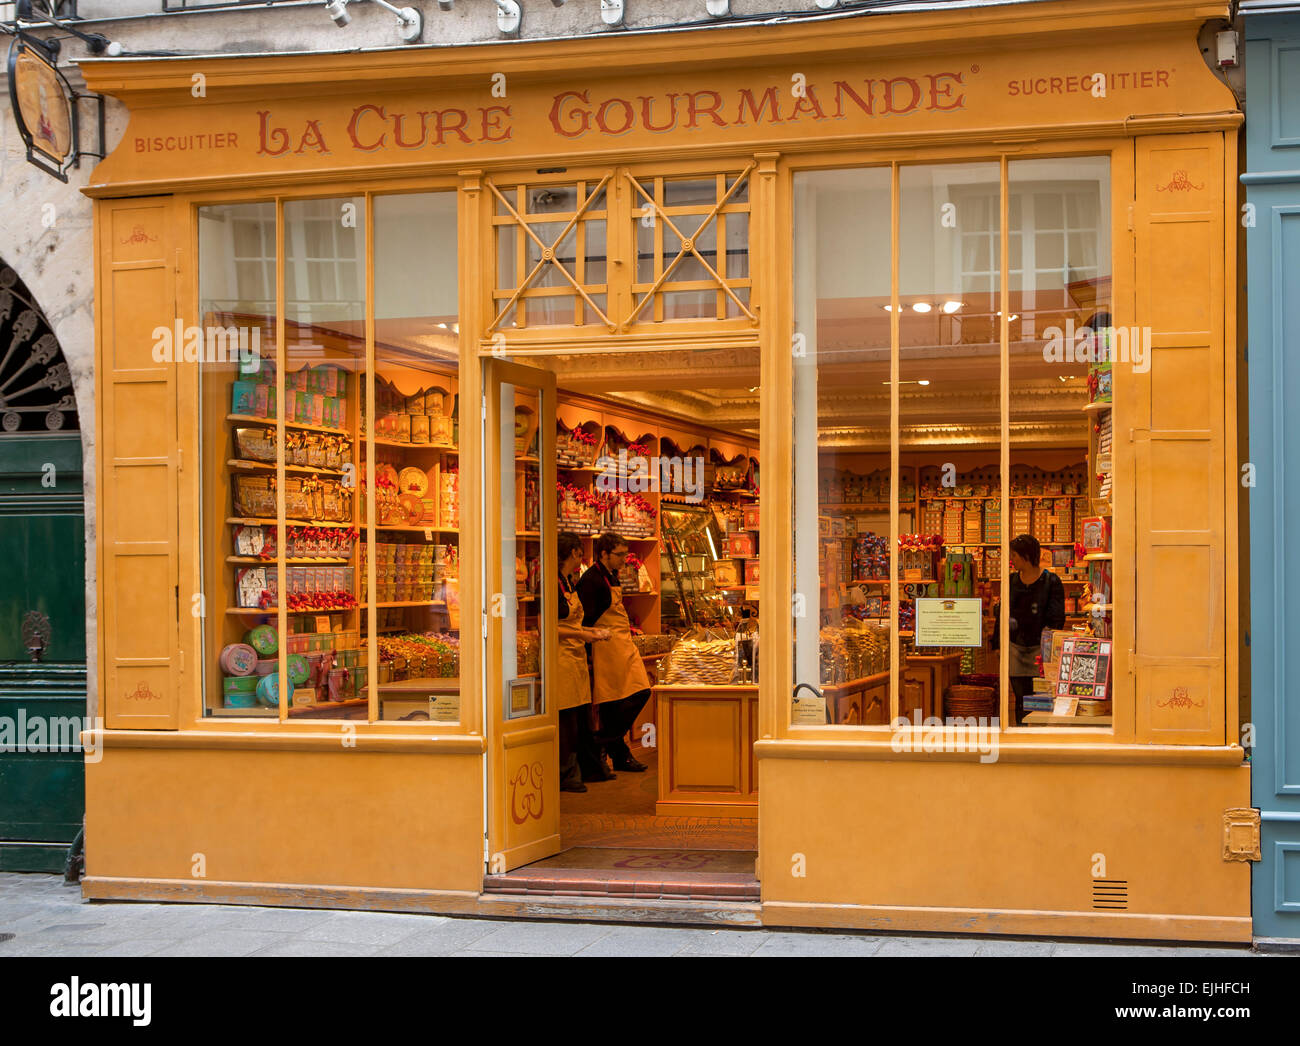 La Cure Gourmande chocolates and cookies Shop, Paris, France - Stock Image